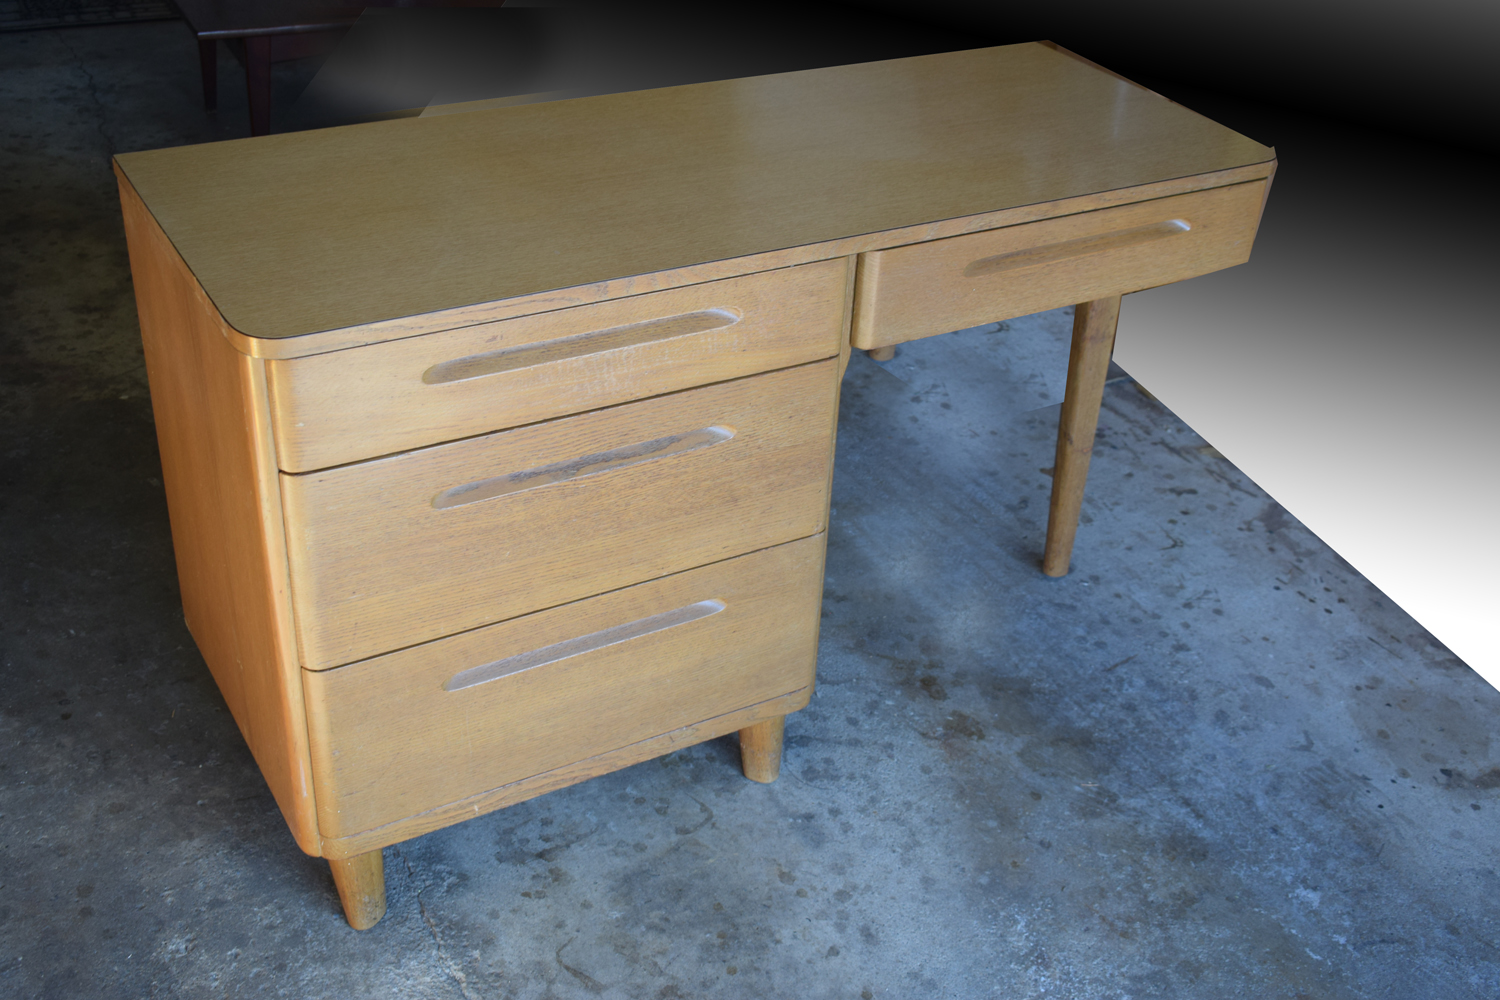 Huntington Chair Corporation Revolving Visitor Affordable Modernism Corp Sleek Lines And Curved Streamlined Drawers Has Tons Of Storage Finger Grip Pulls A Modernist Vision Deco Meets Modern